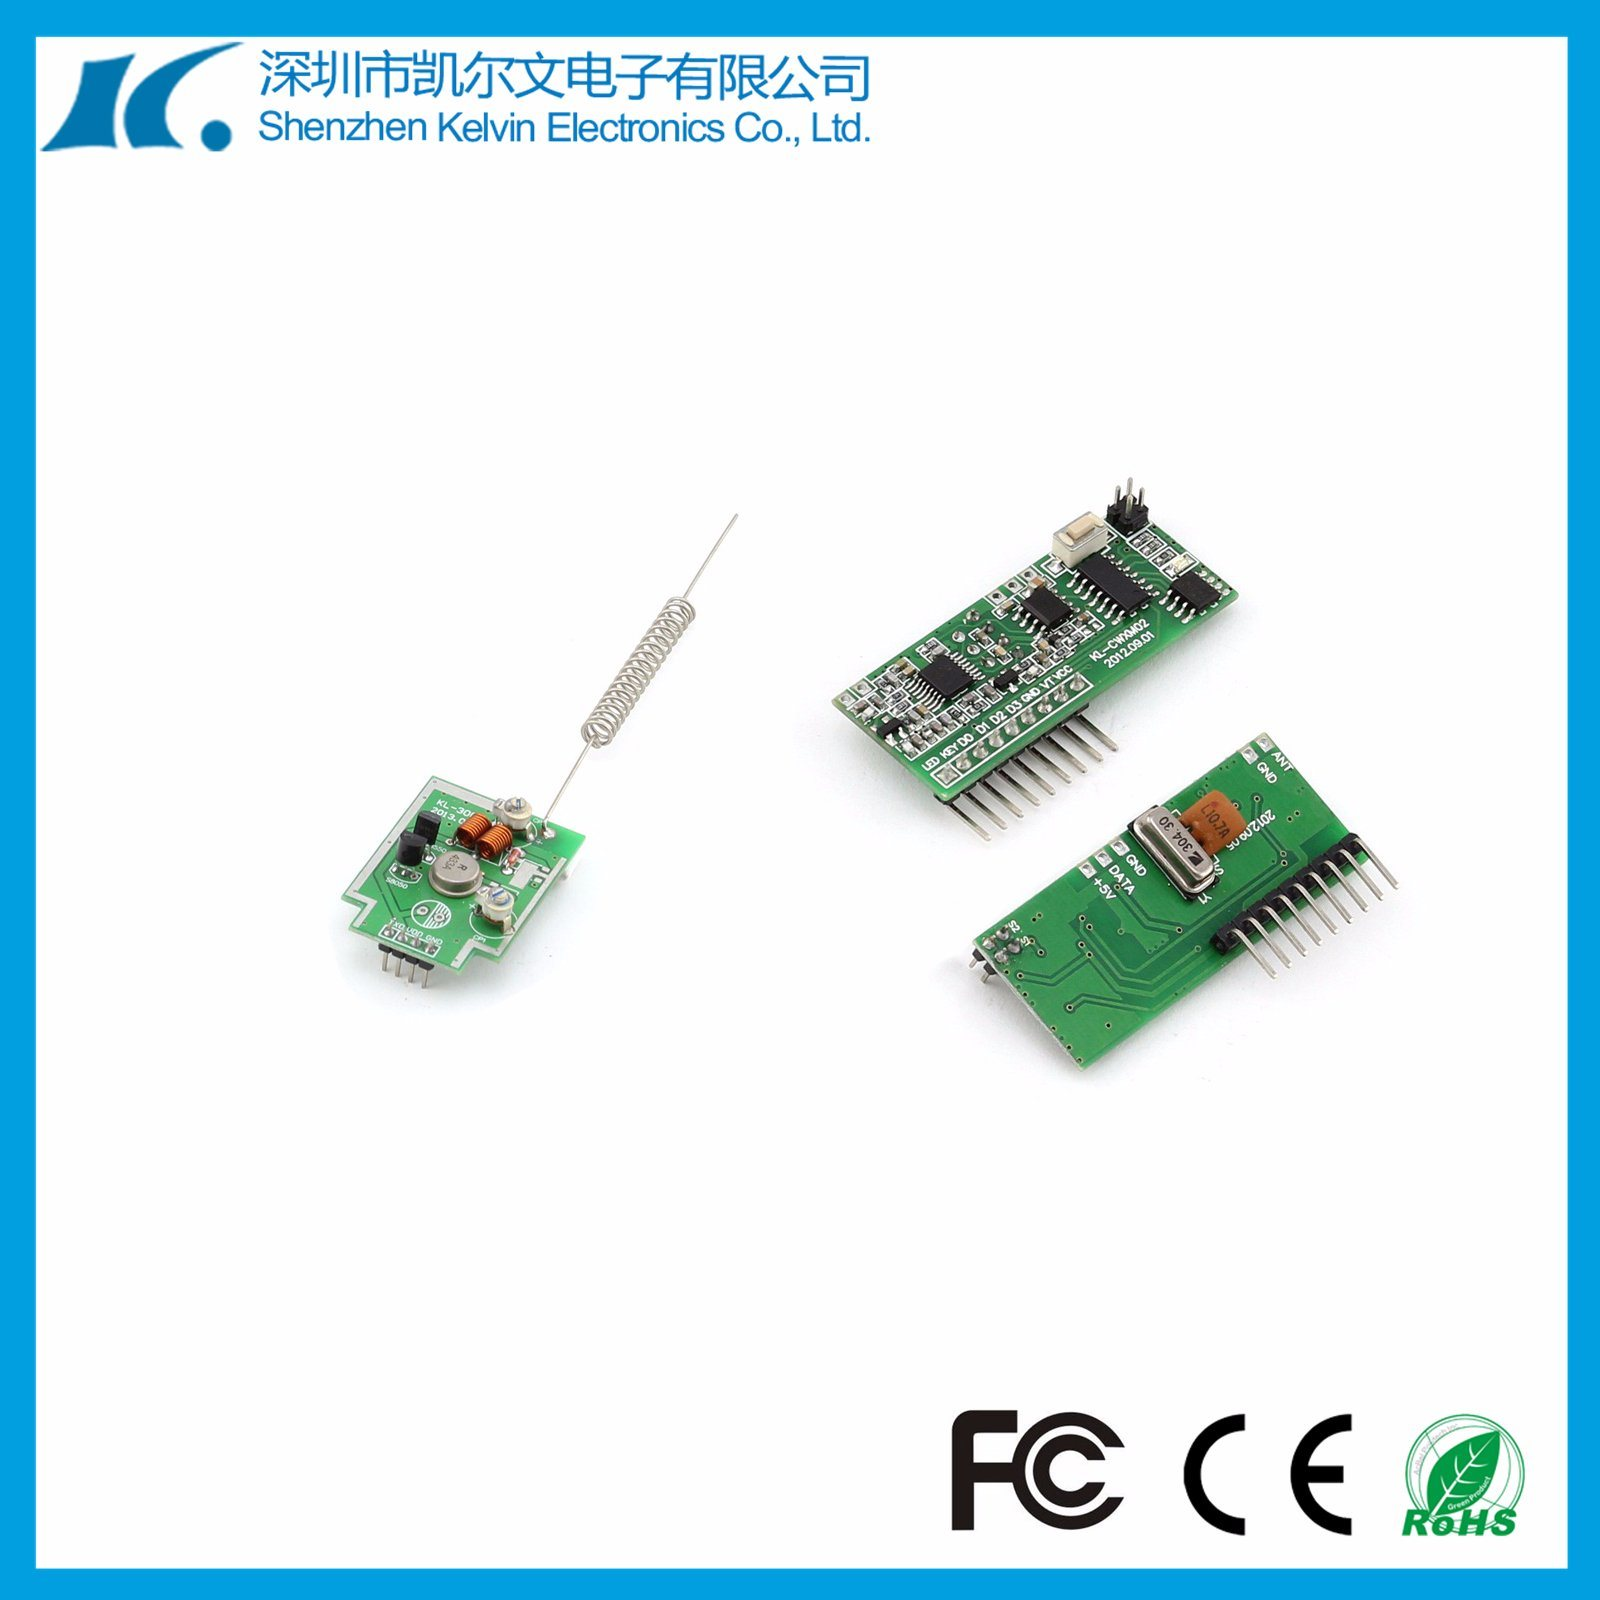 China Dc5v 433mhz Rf Remote Control Wireless Transmitter And Circuit Diagram Receiver Module